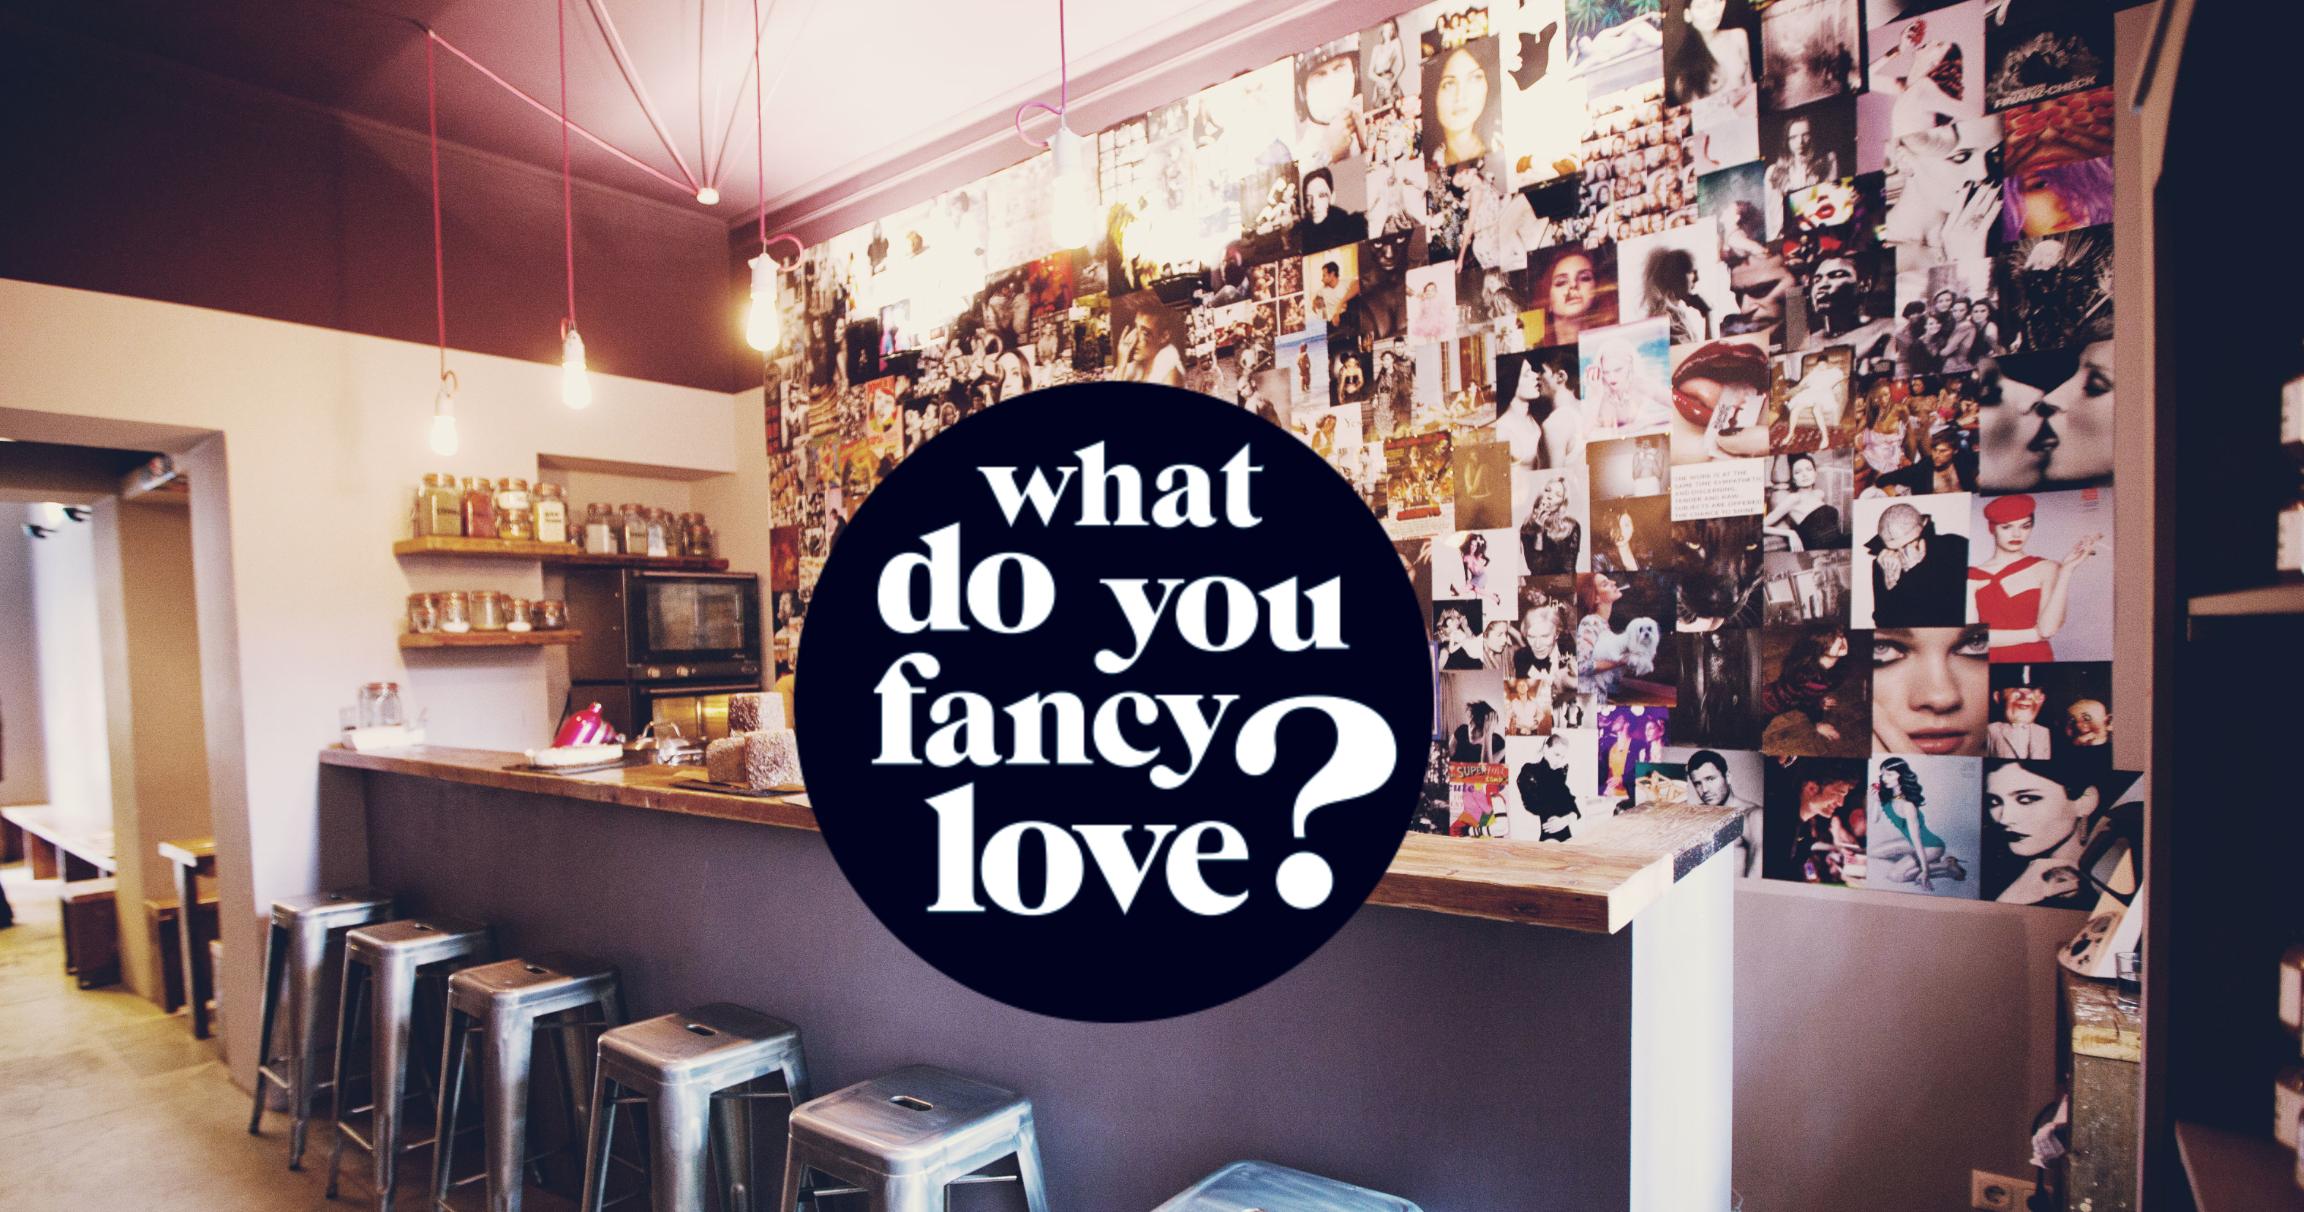 Originell: Die Collage im Hinterraum des What do you fancy love? © What do you fancy love?